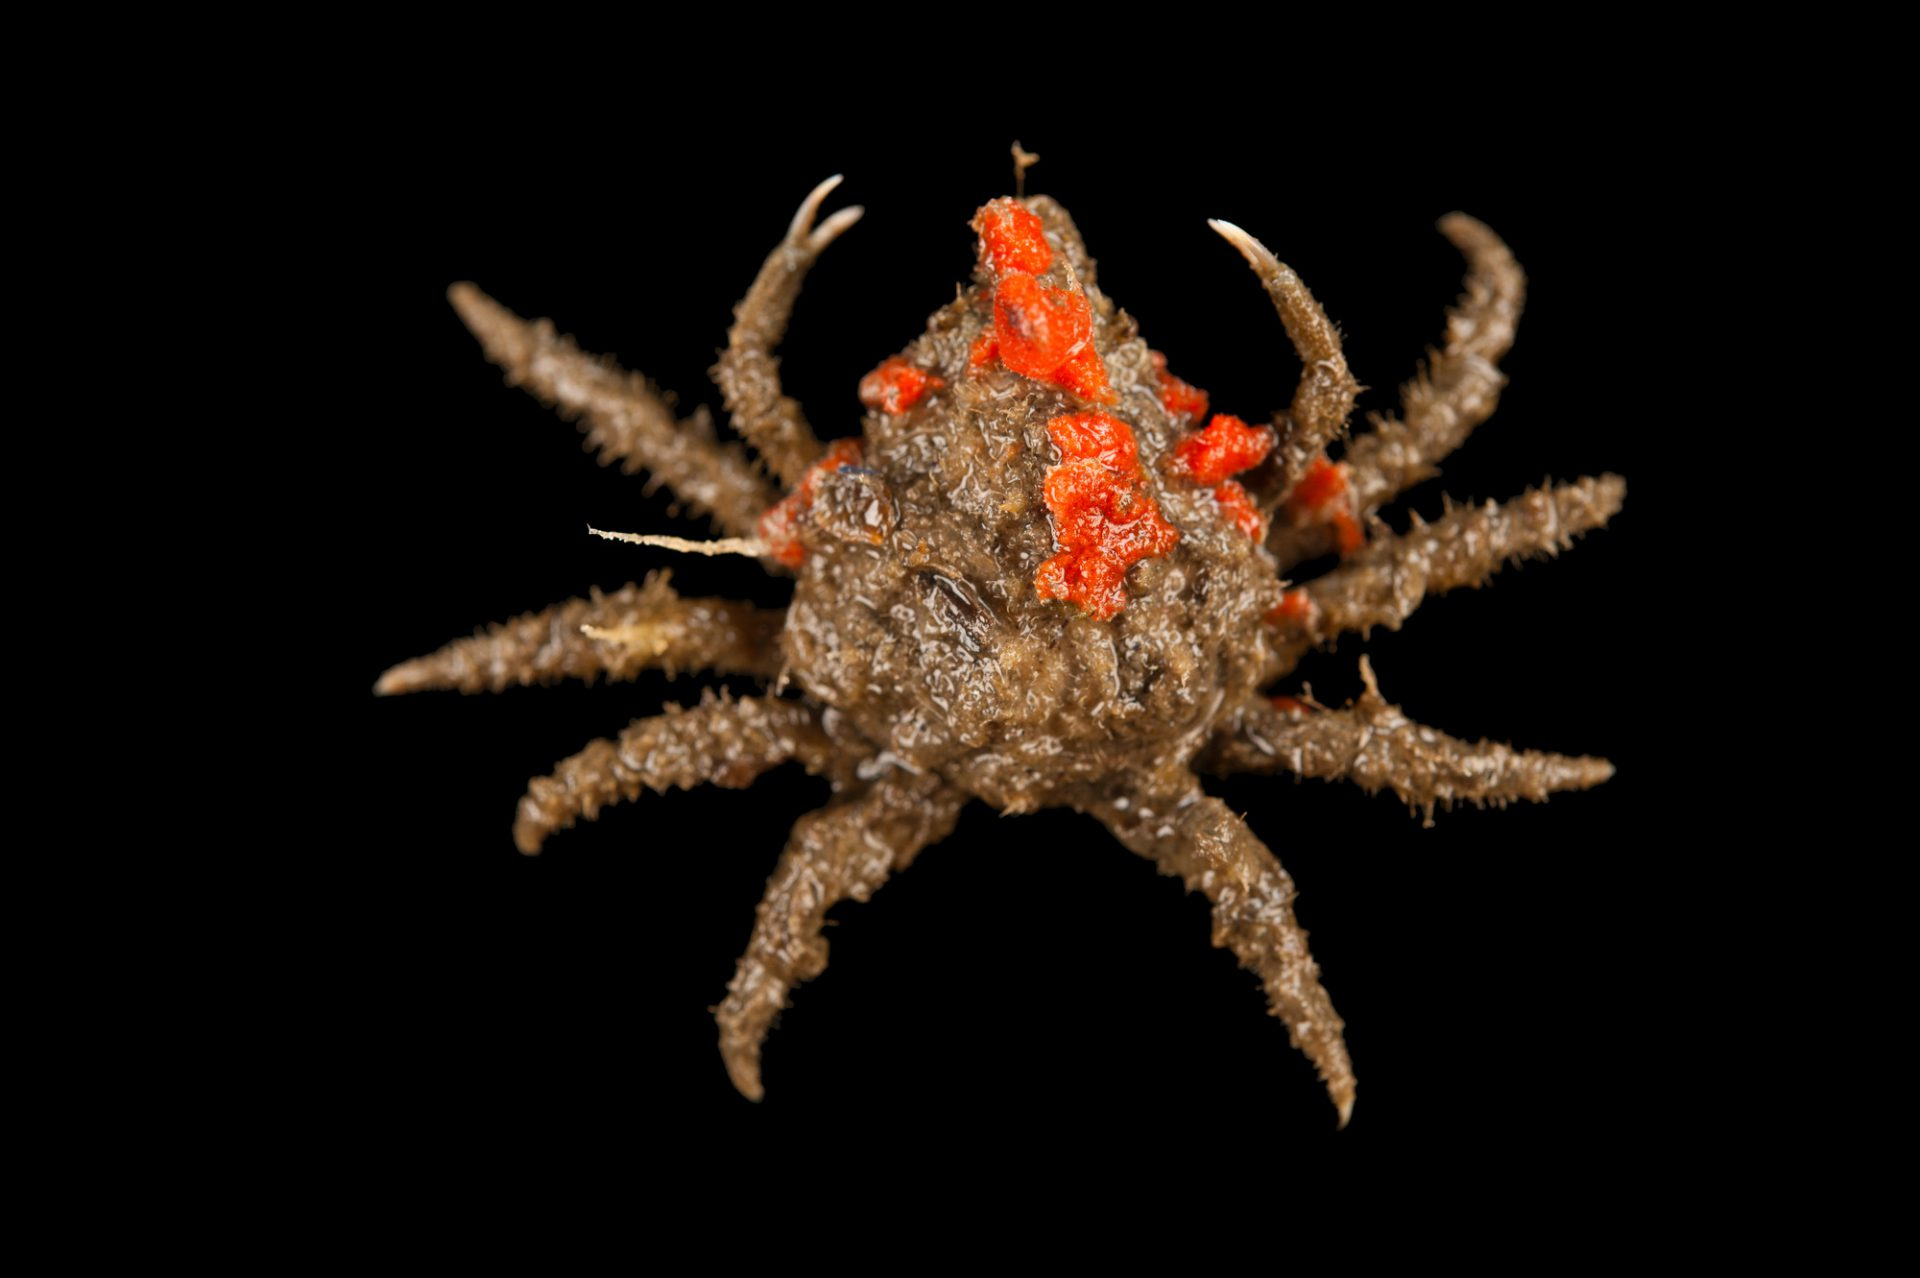 Common spider crab, also known portly spider crab or nine-spined spider crab (Libinia emarginata), with red beard sponge that it has attached to its shell at the Sedge Island Natural Resource Education Center in the Sedge Islands Marine Conservation Zone, Barnegat Bay, New Jersey.